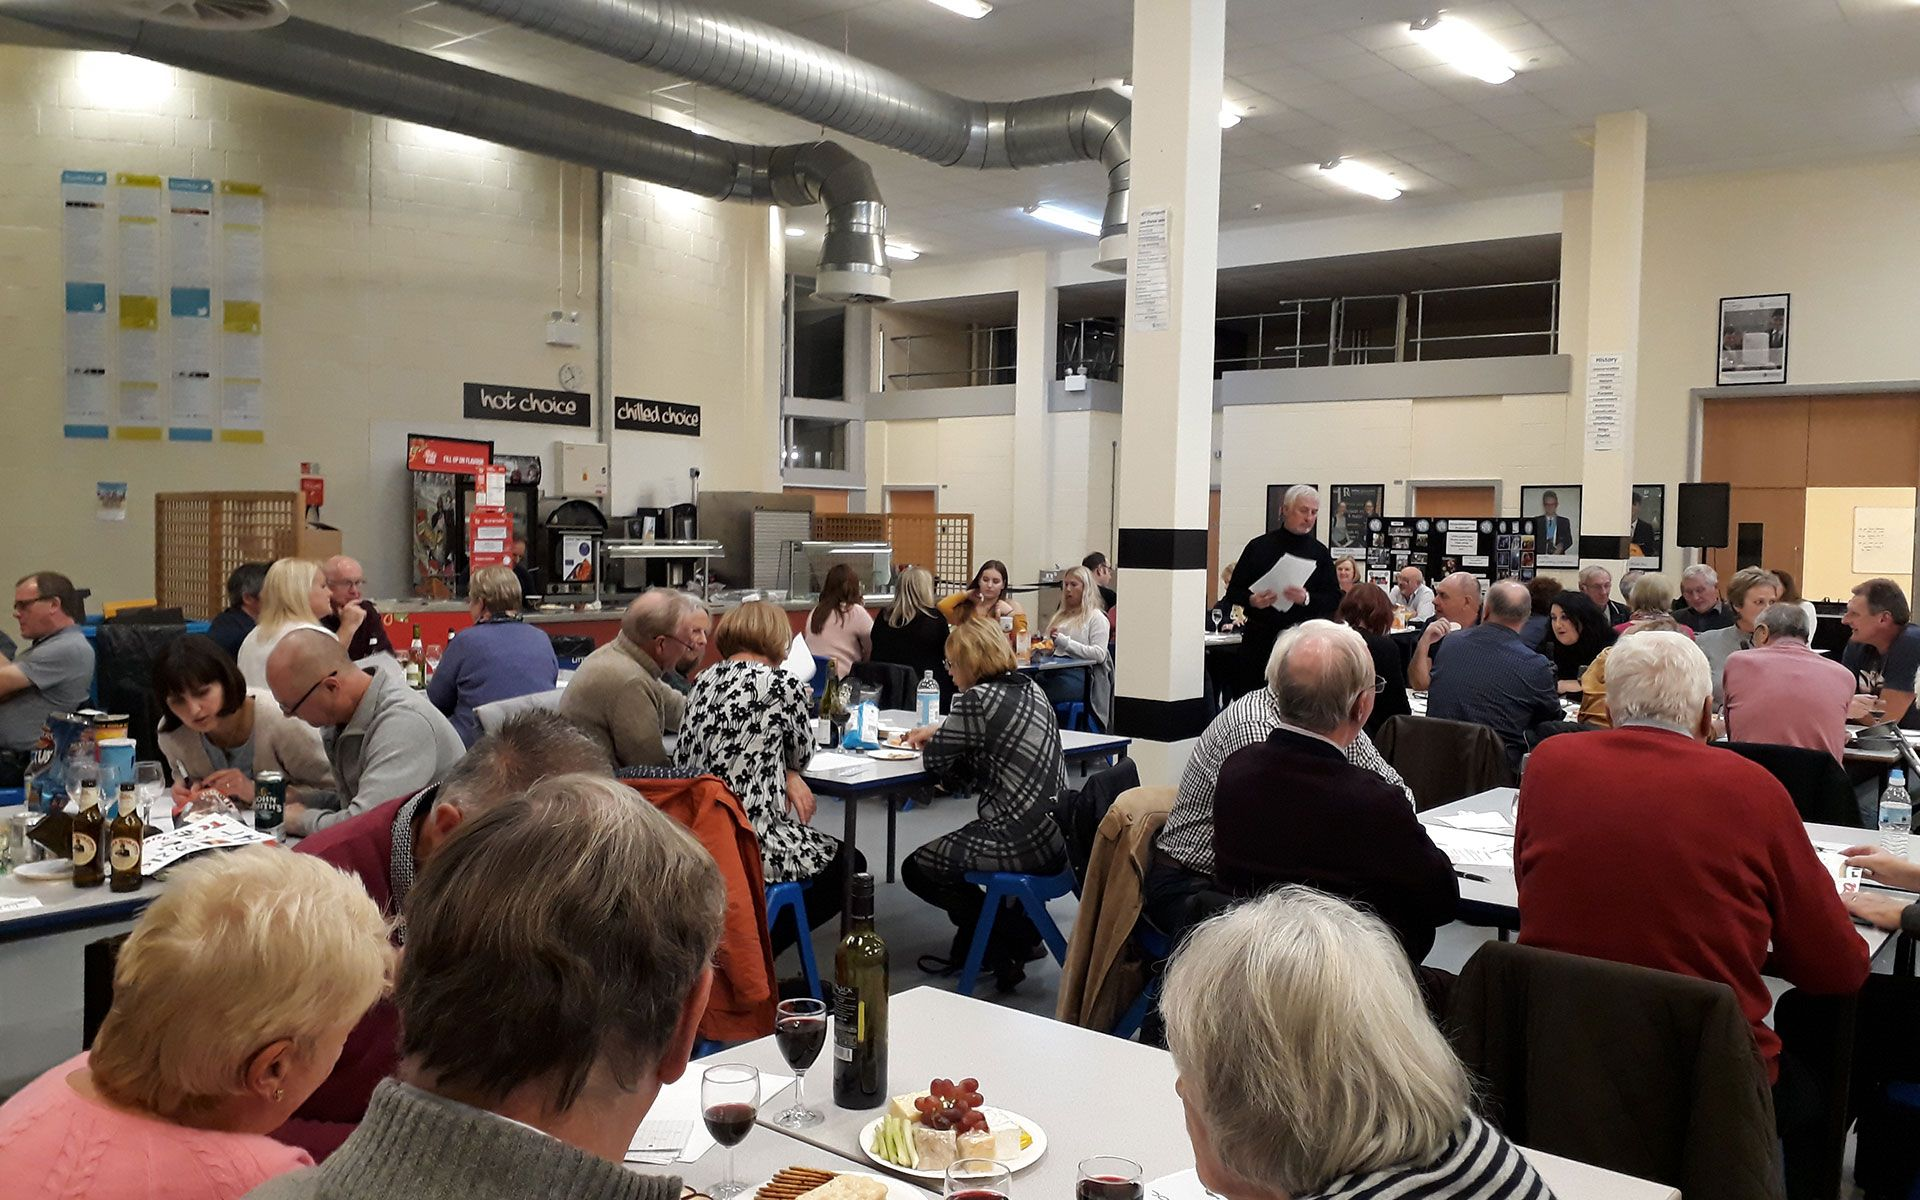 The annual Quiz Night at Retford Oaks Academy is a fabulous fundraising event.